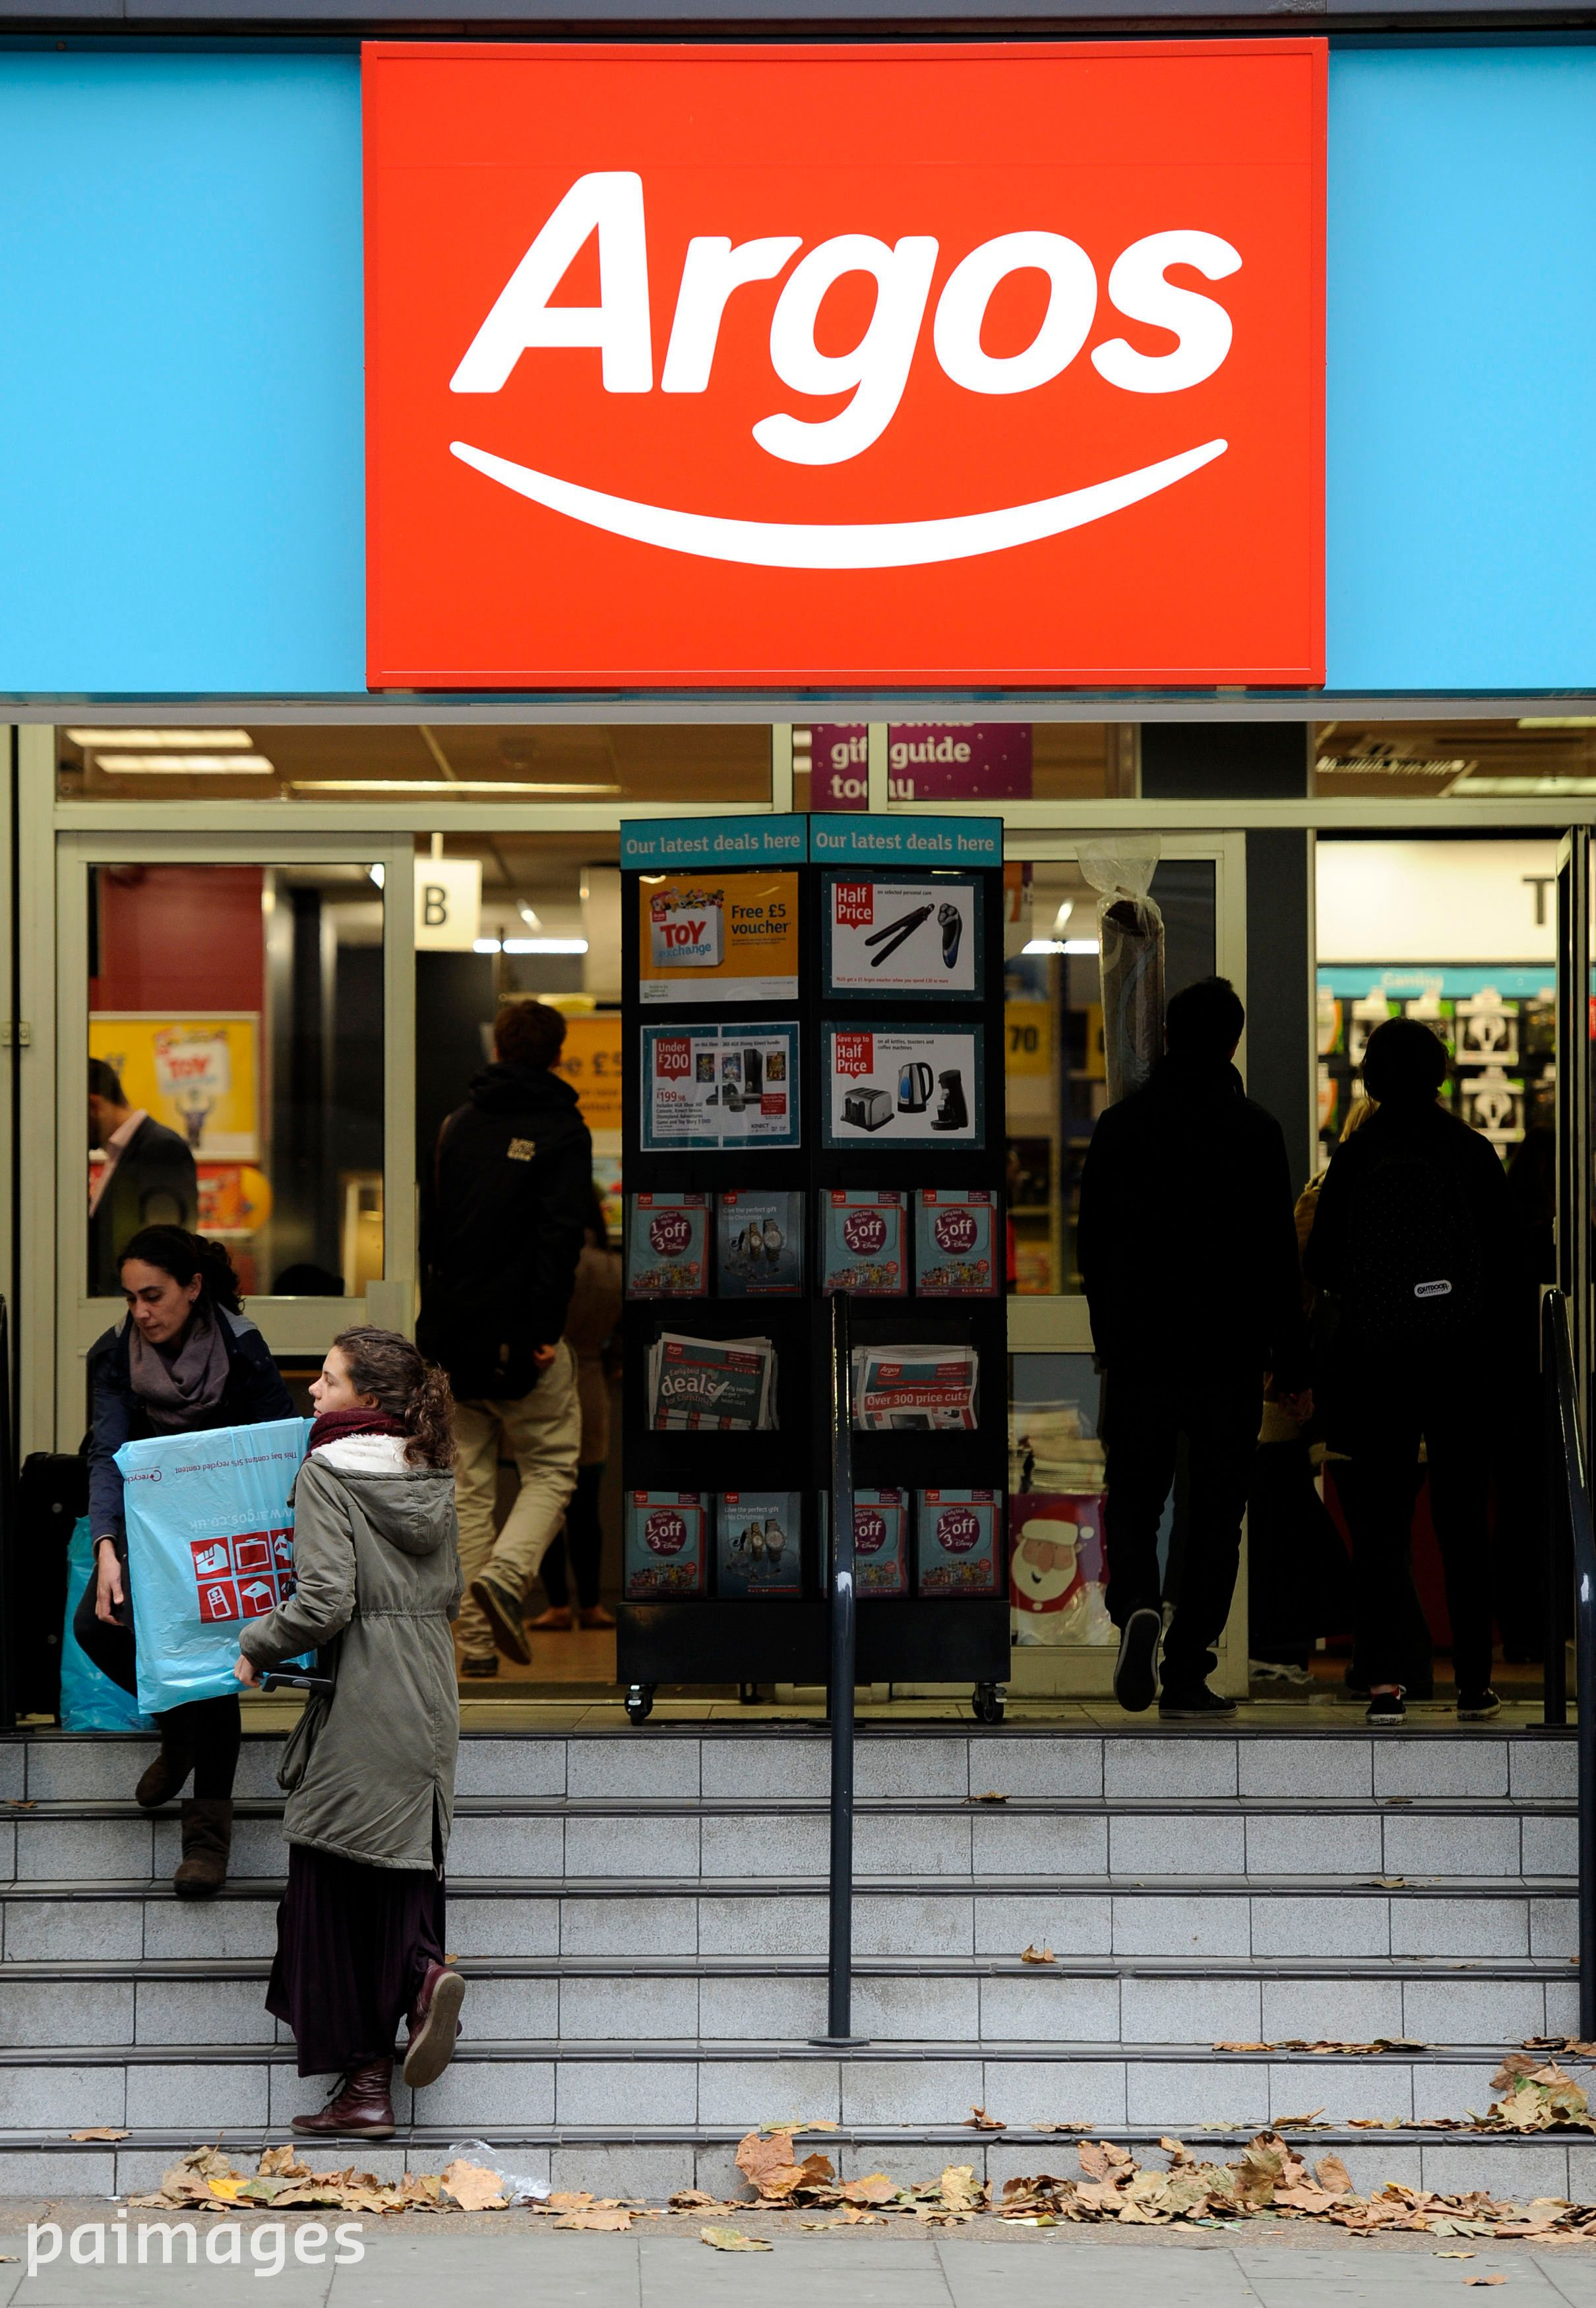 Argos Forced To Pay £1.4m In Wages To 12,000 Workers It